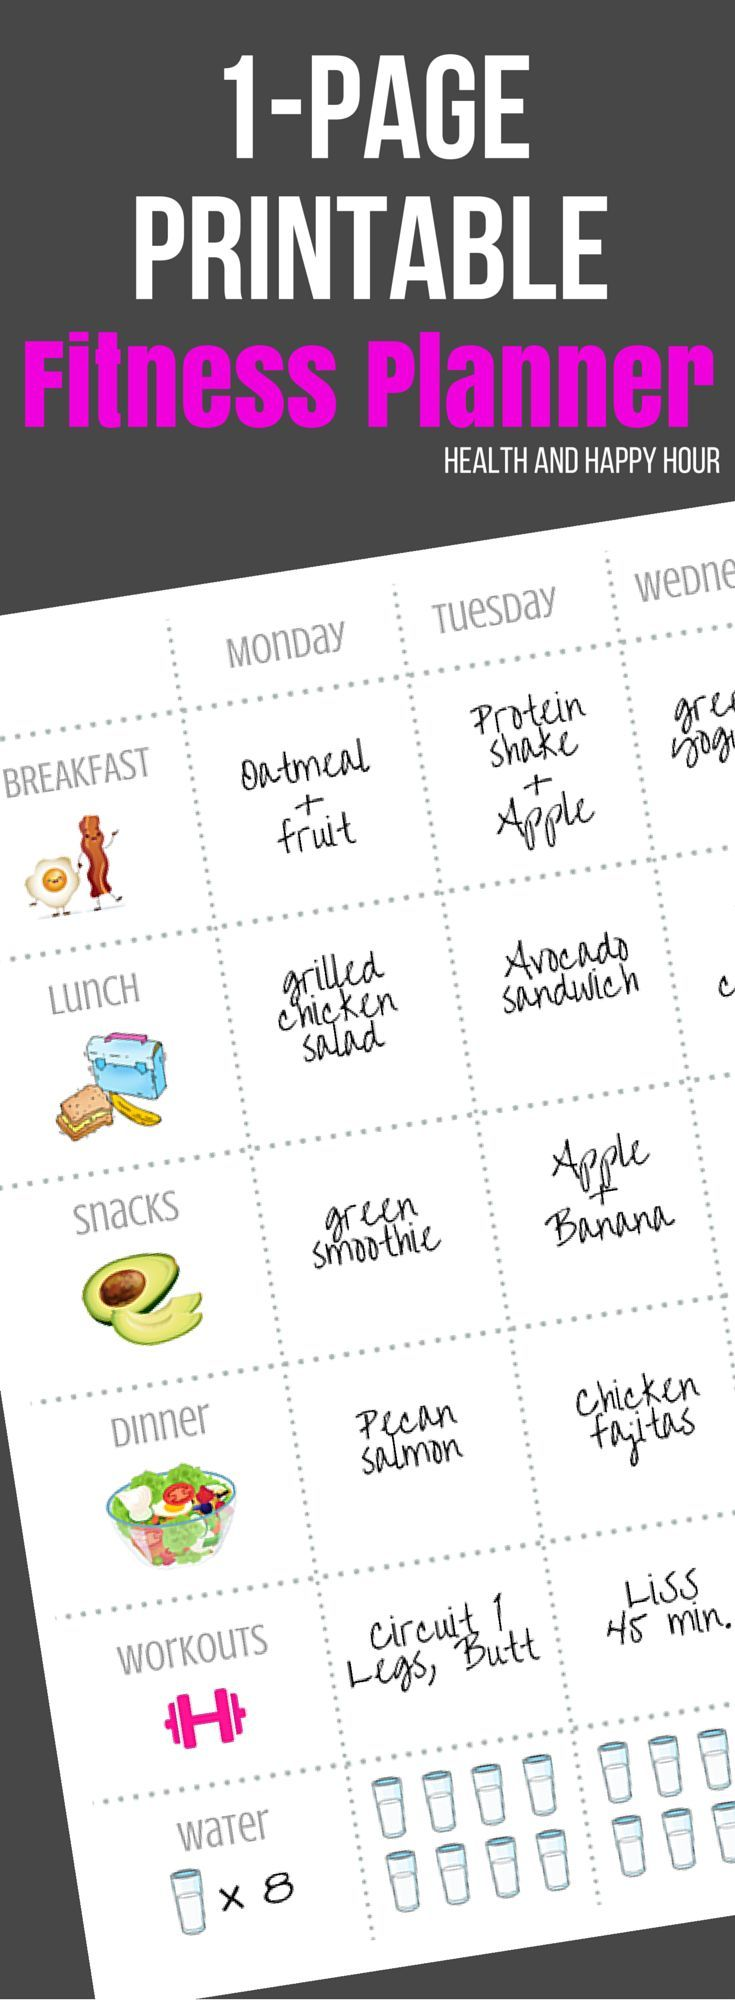 Fitness planners and journals can be powerful weight loss tools according to recent studies. Get your free print out today and get started! http://healthandhappyhour.com/1-page-printable-fitness-planner/